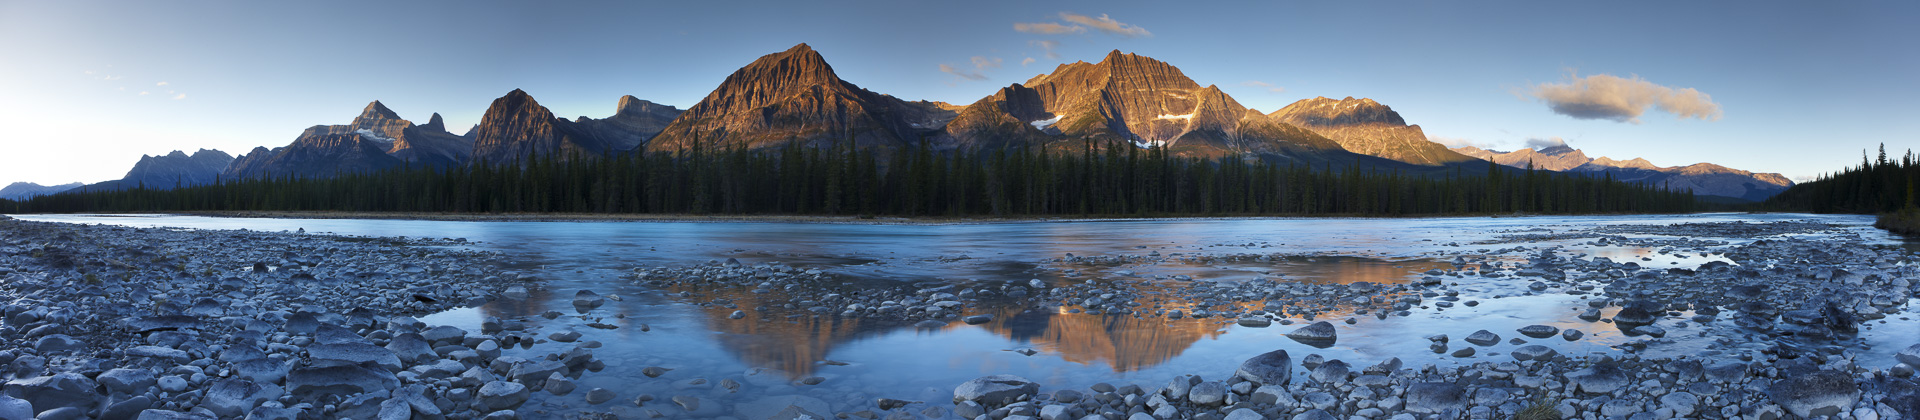 The Athabasca River with Mount Fryatt and Brussels Peak at dawn, Jasper National Park, Alberta, Canada